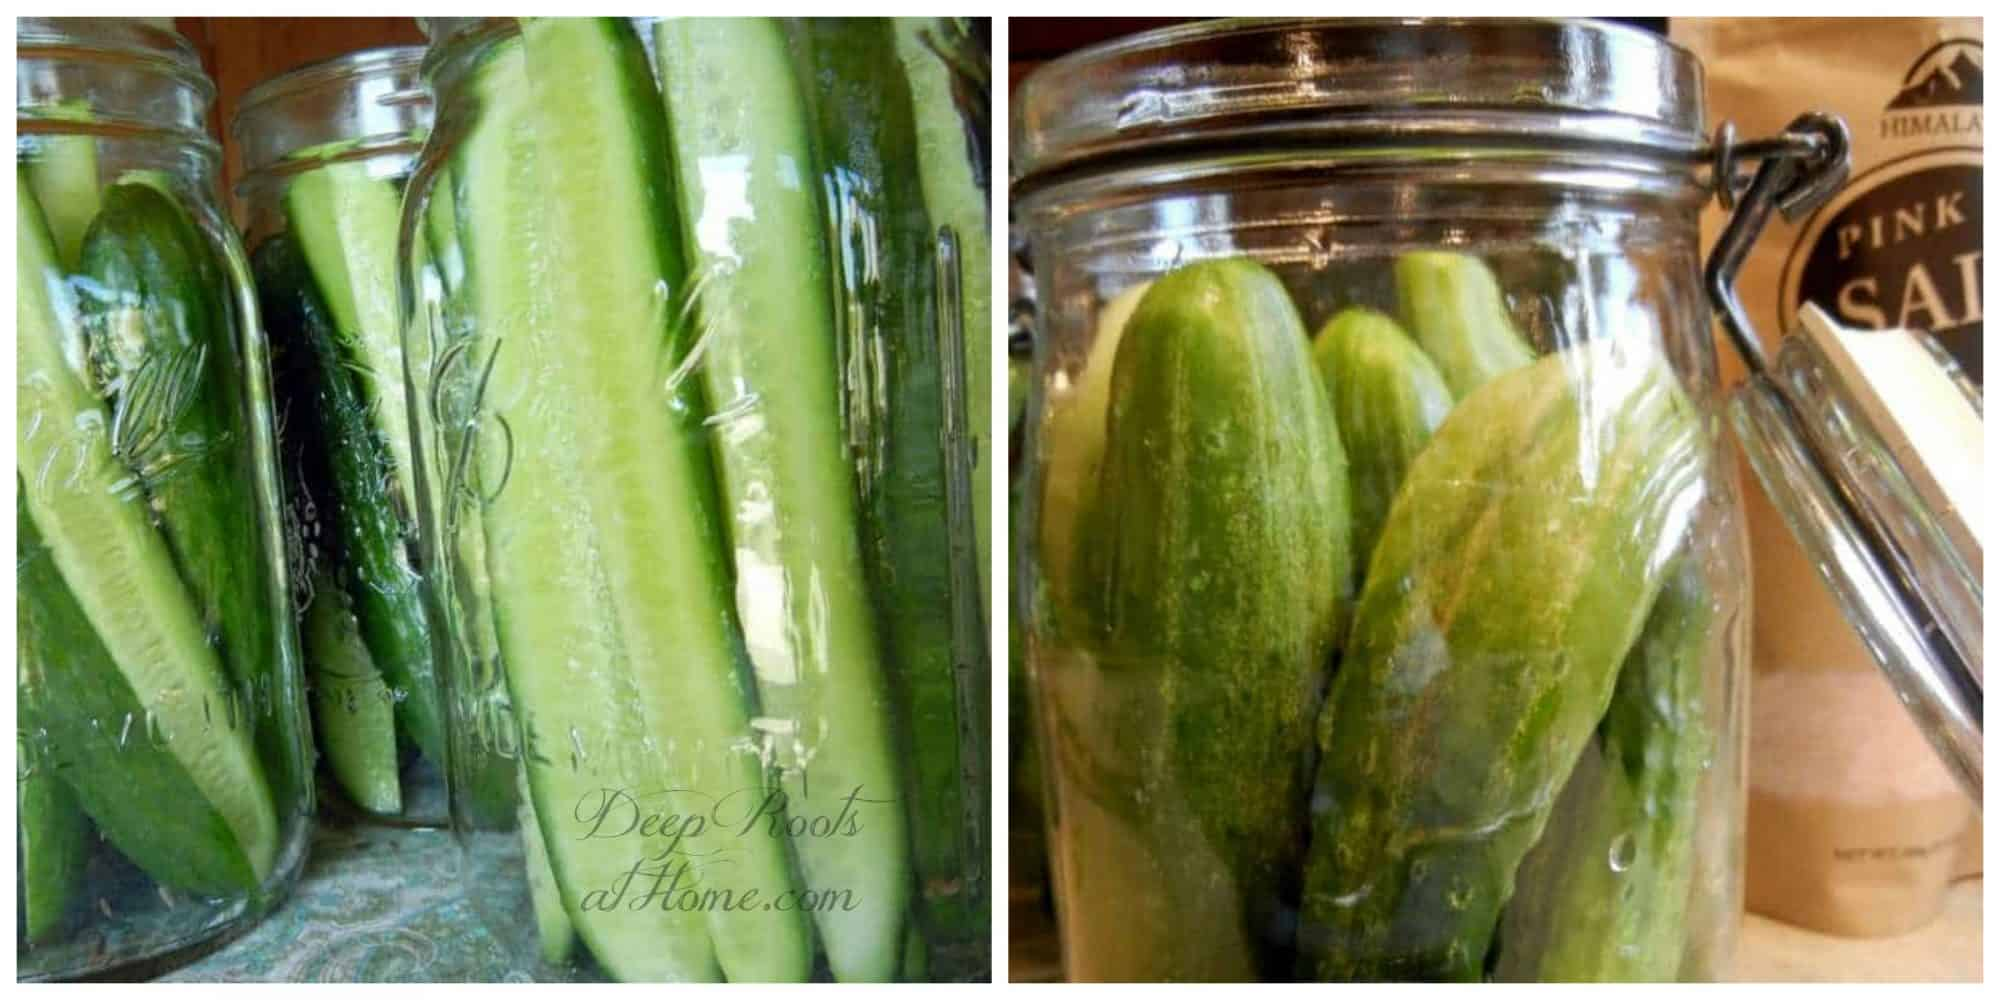 Lacto-Fermented Pickles Like I Had As A Girl, No Canning. slicing and stuffing pickles into jars.